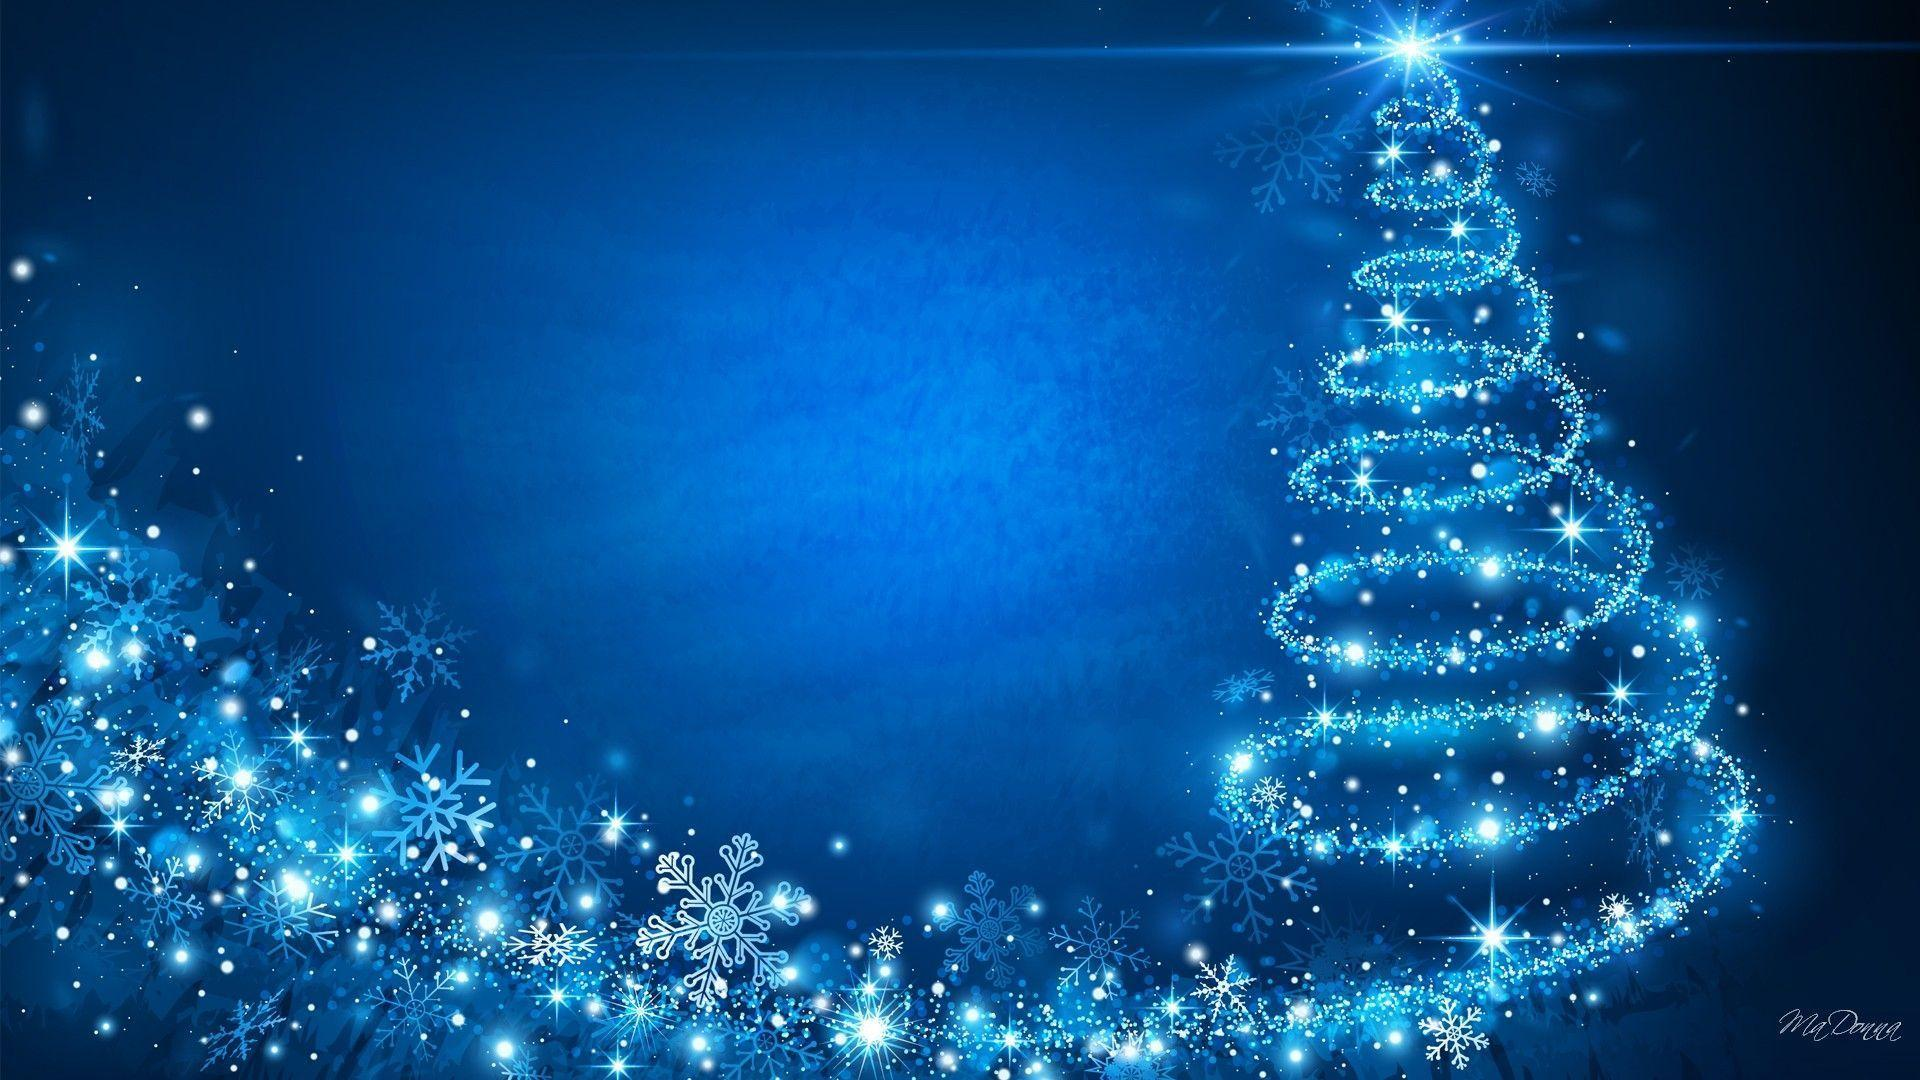 blue christmas wallpapers - wallpaper cave